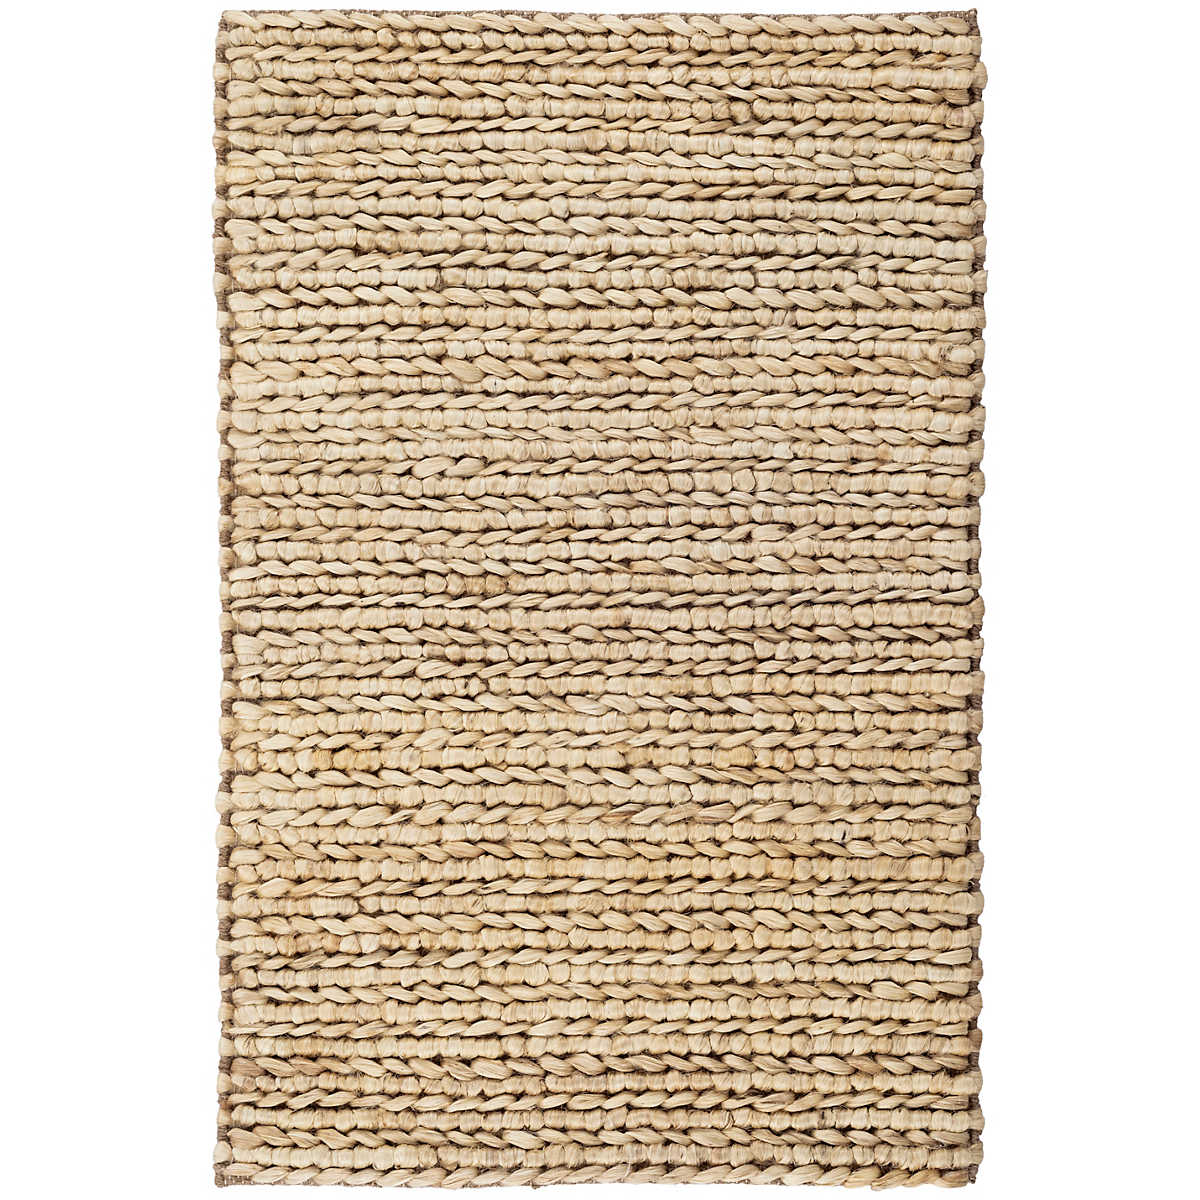 What Color Is Natural Jute Rug